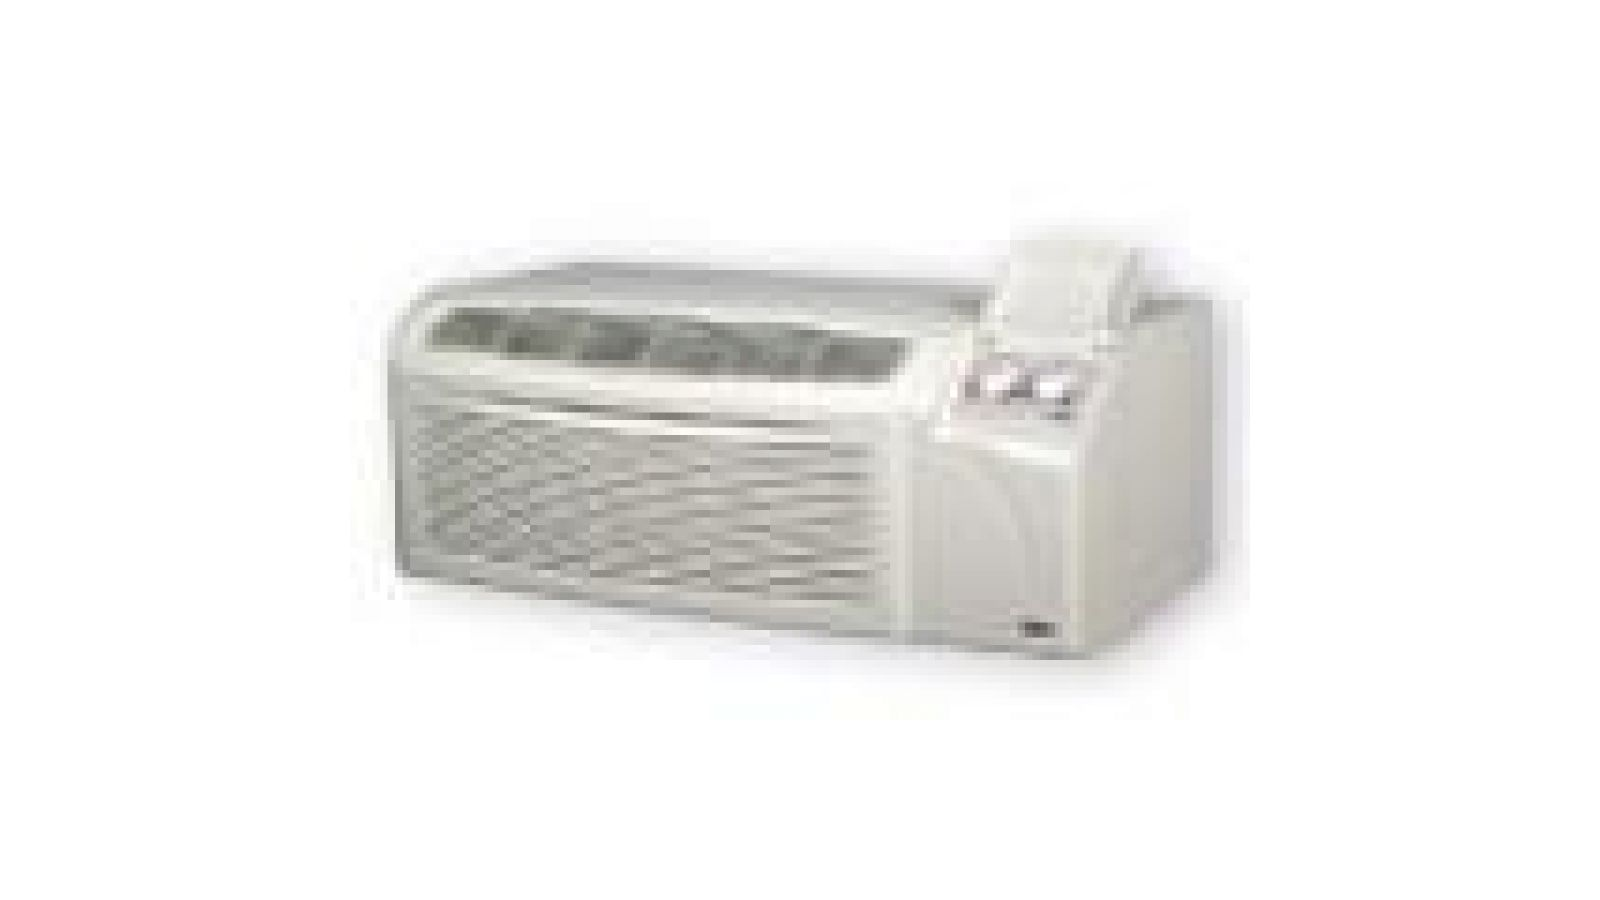 52C Comfort Packaged Terminal Air Conditioner